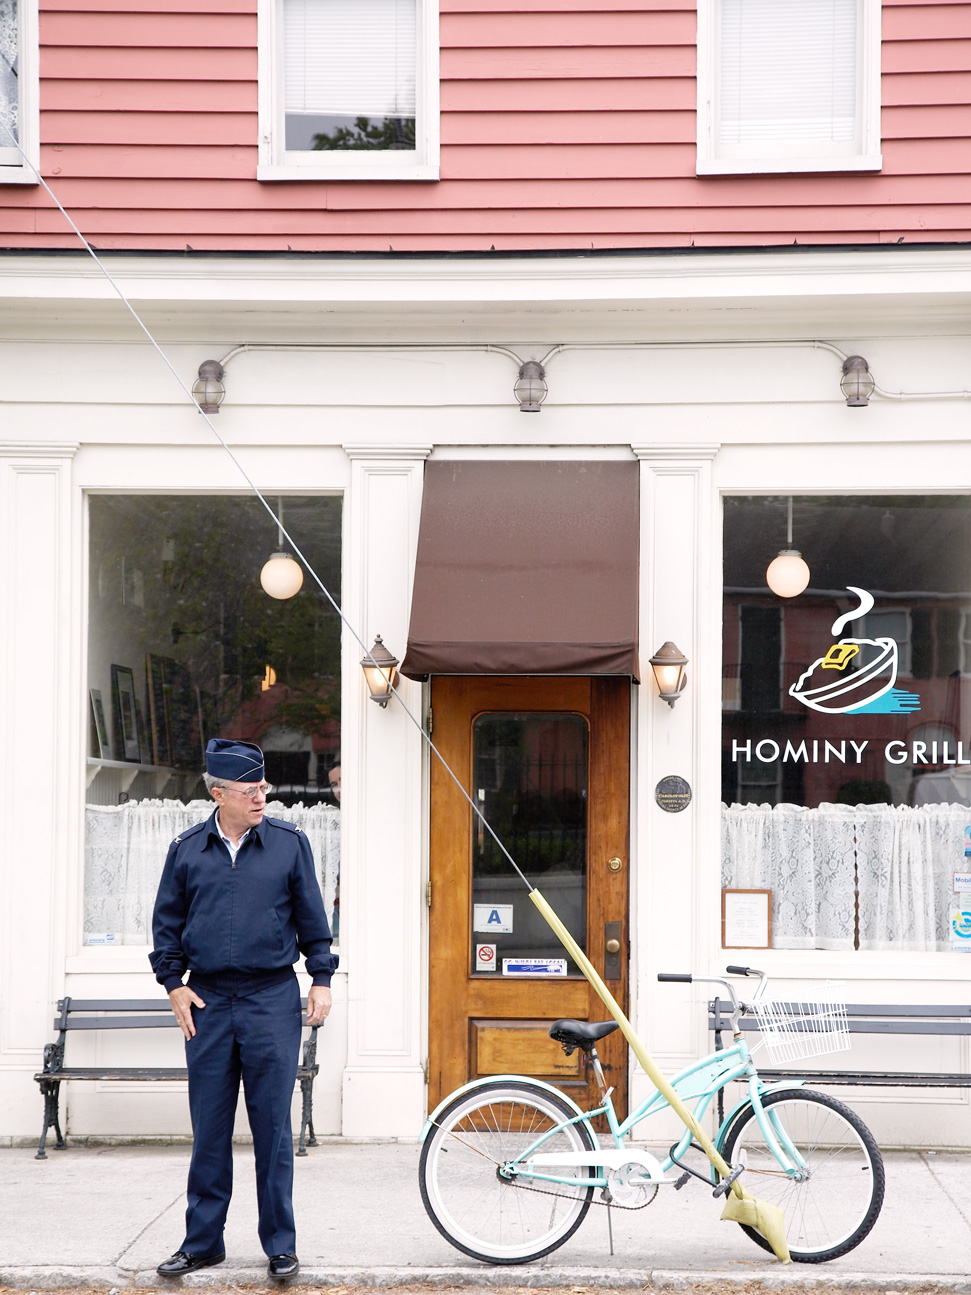 Ok- does it get better than the Hominy Grill for some quaint Southern charm? An old barber store and shotgun dwelling with a ghost or two floating around I'm sure.The best grits you'll ever eat!